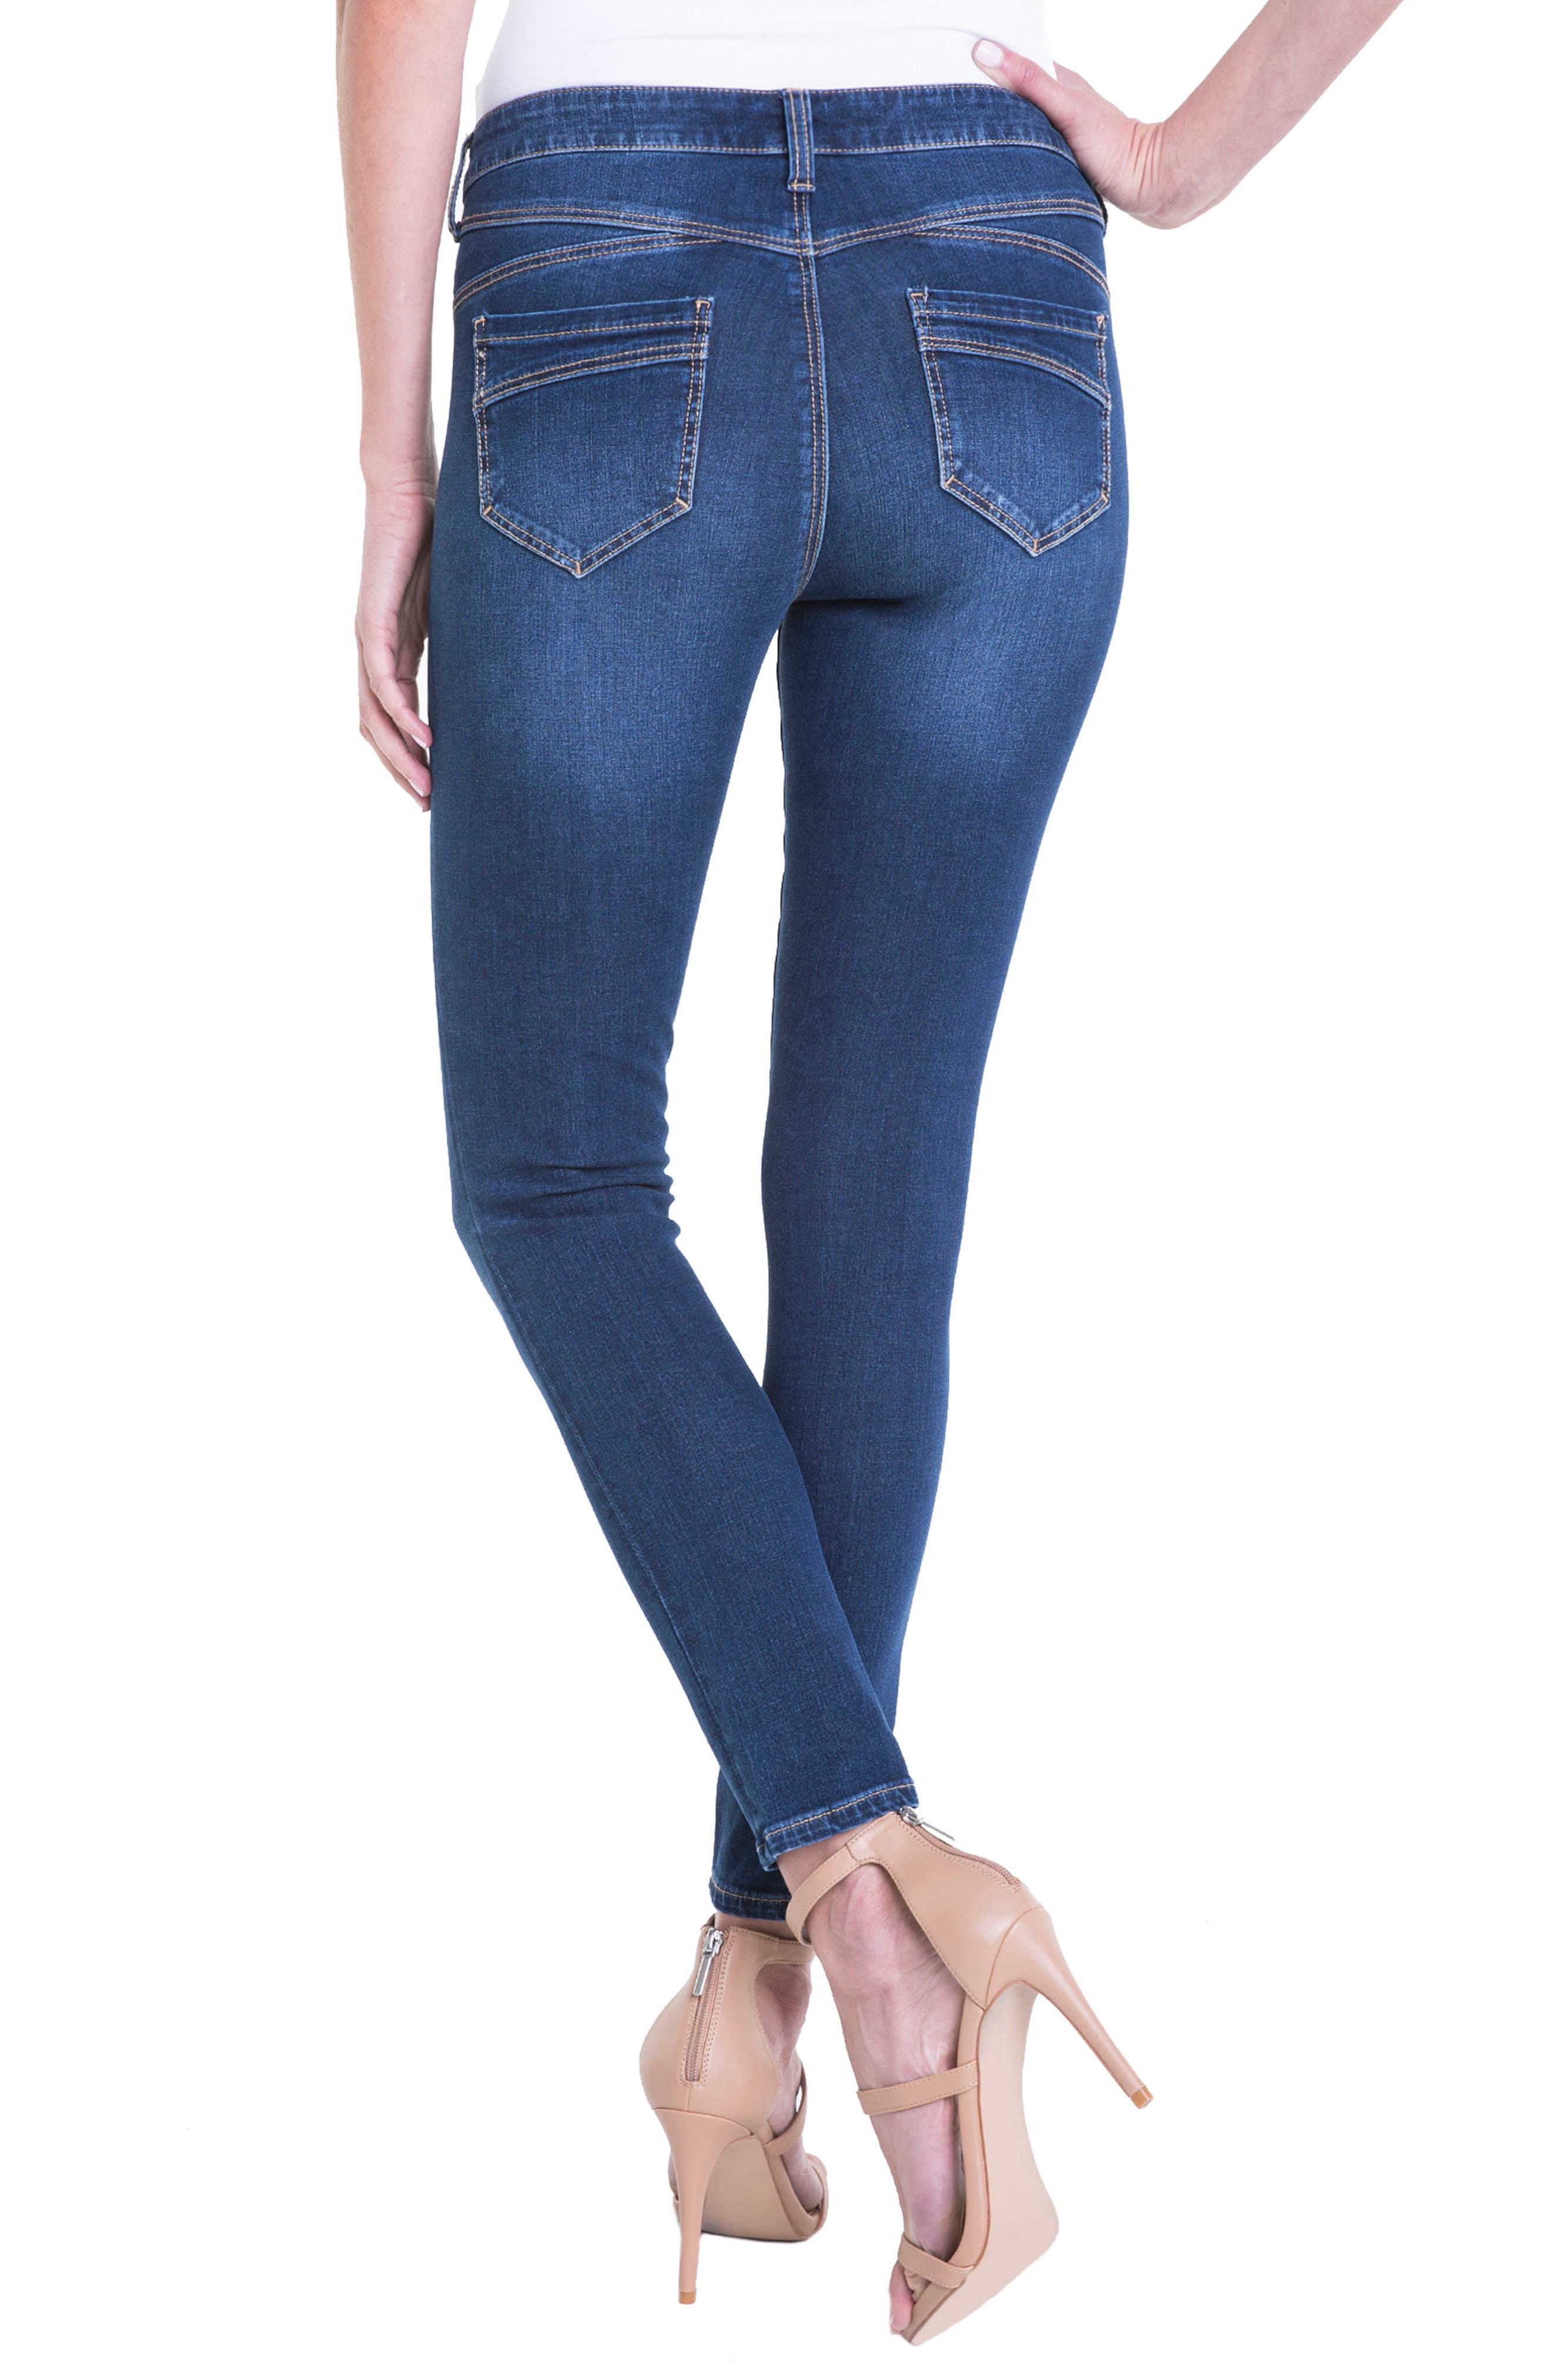 Jeans Company Piper Hugger Lift Sculpt Ankle Skinny Jeans,                             Alternate thumbnail 3, color,                             Lynx Wash